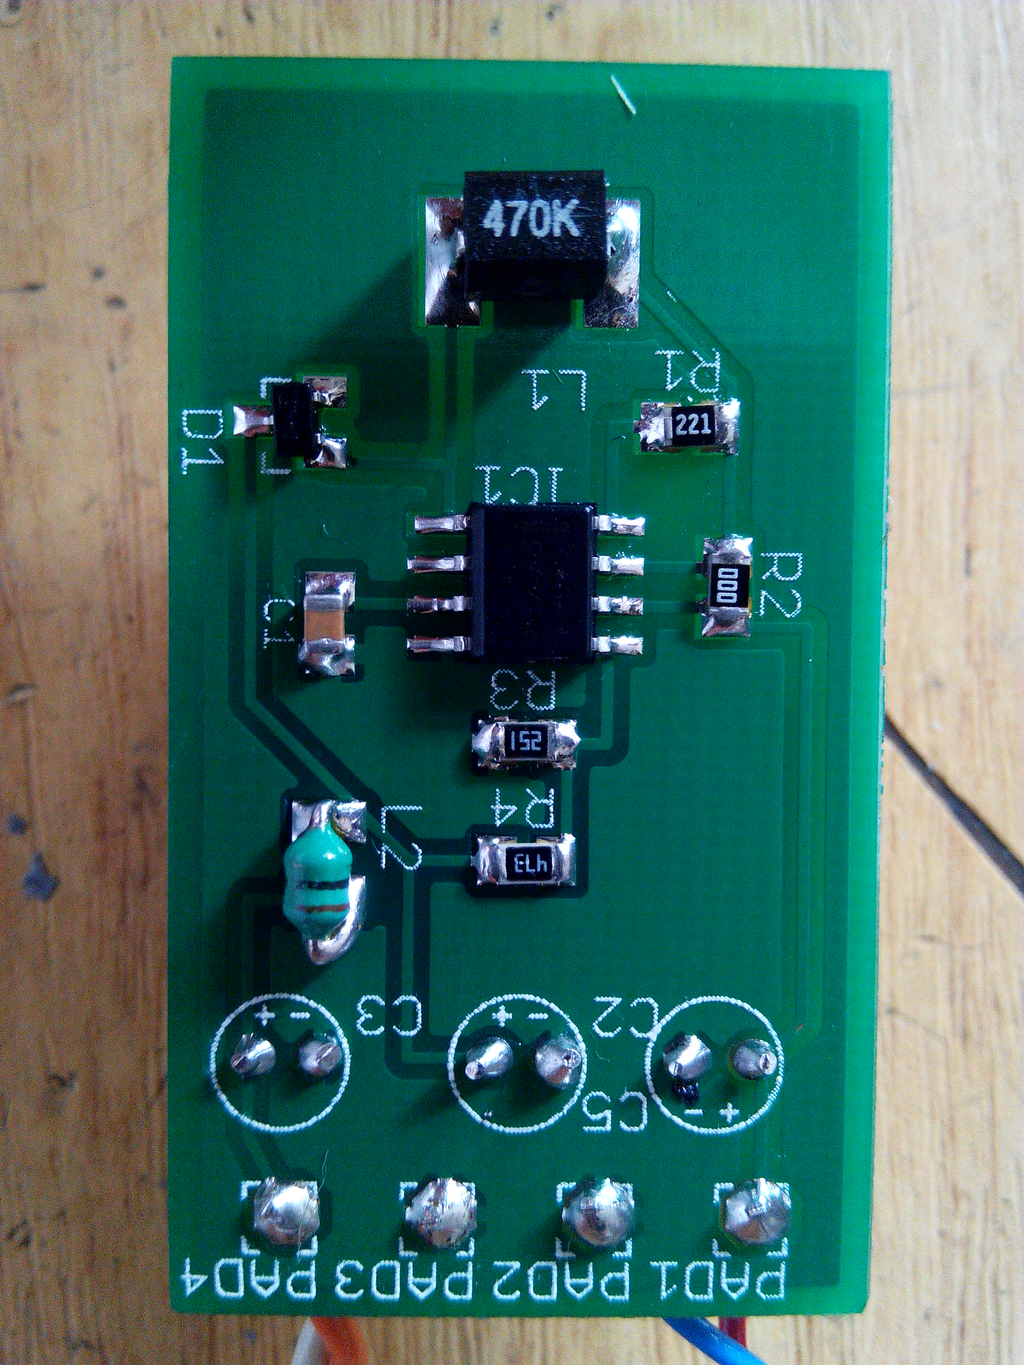 9v To 48v Dc Converter Electronics Lab Circuit Diagram Of 9 Volt Power Supply This Project Is A 8 12vdc 48vdc Based On Mc34063 Switching Regulator